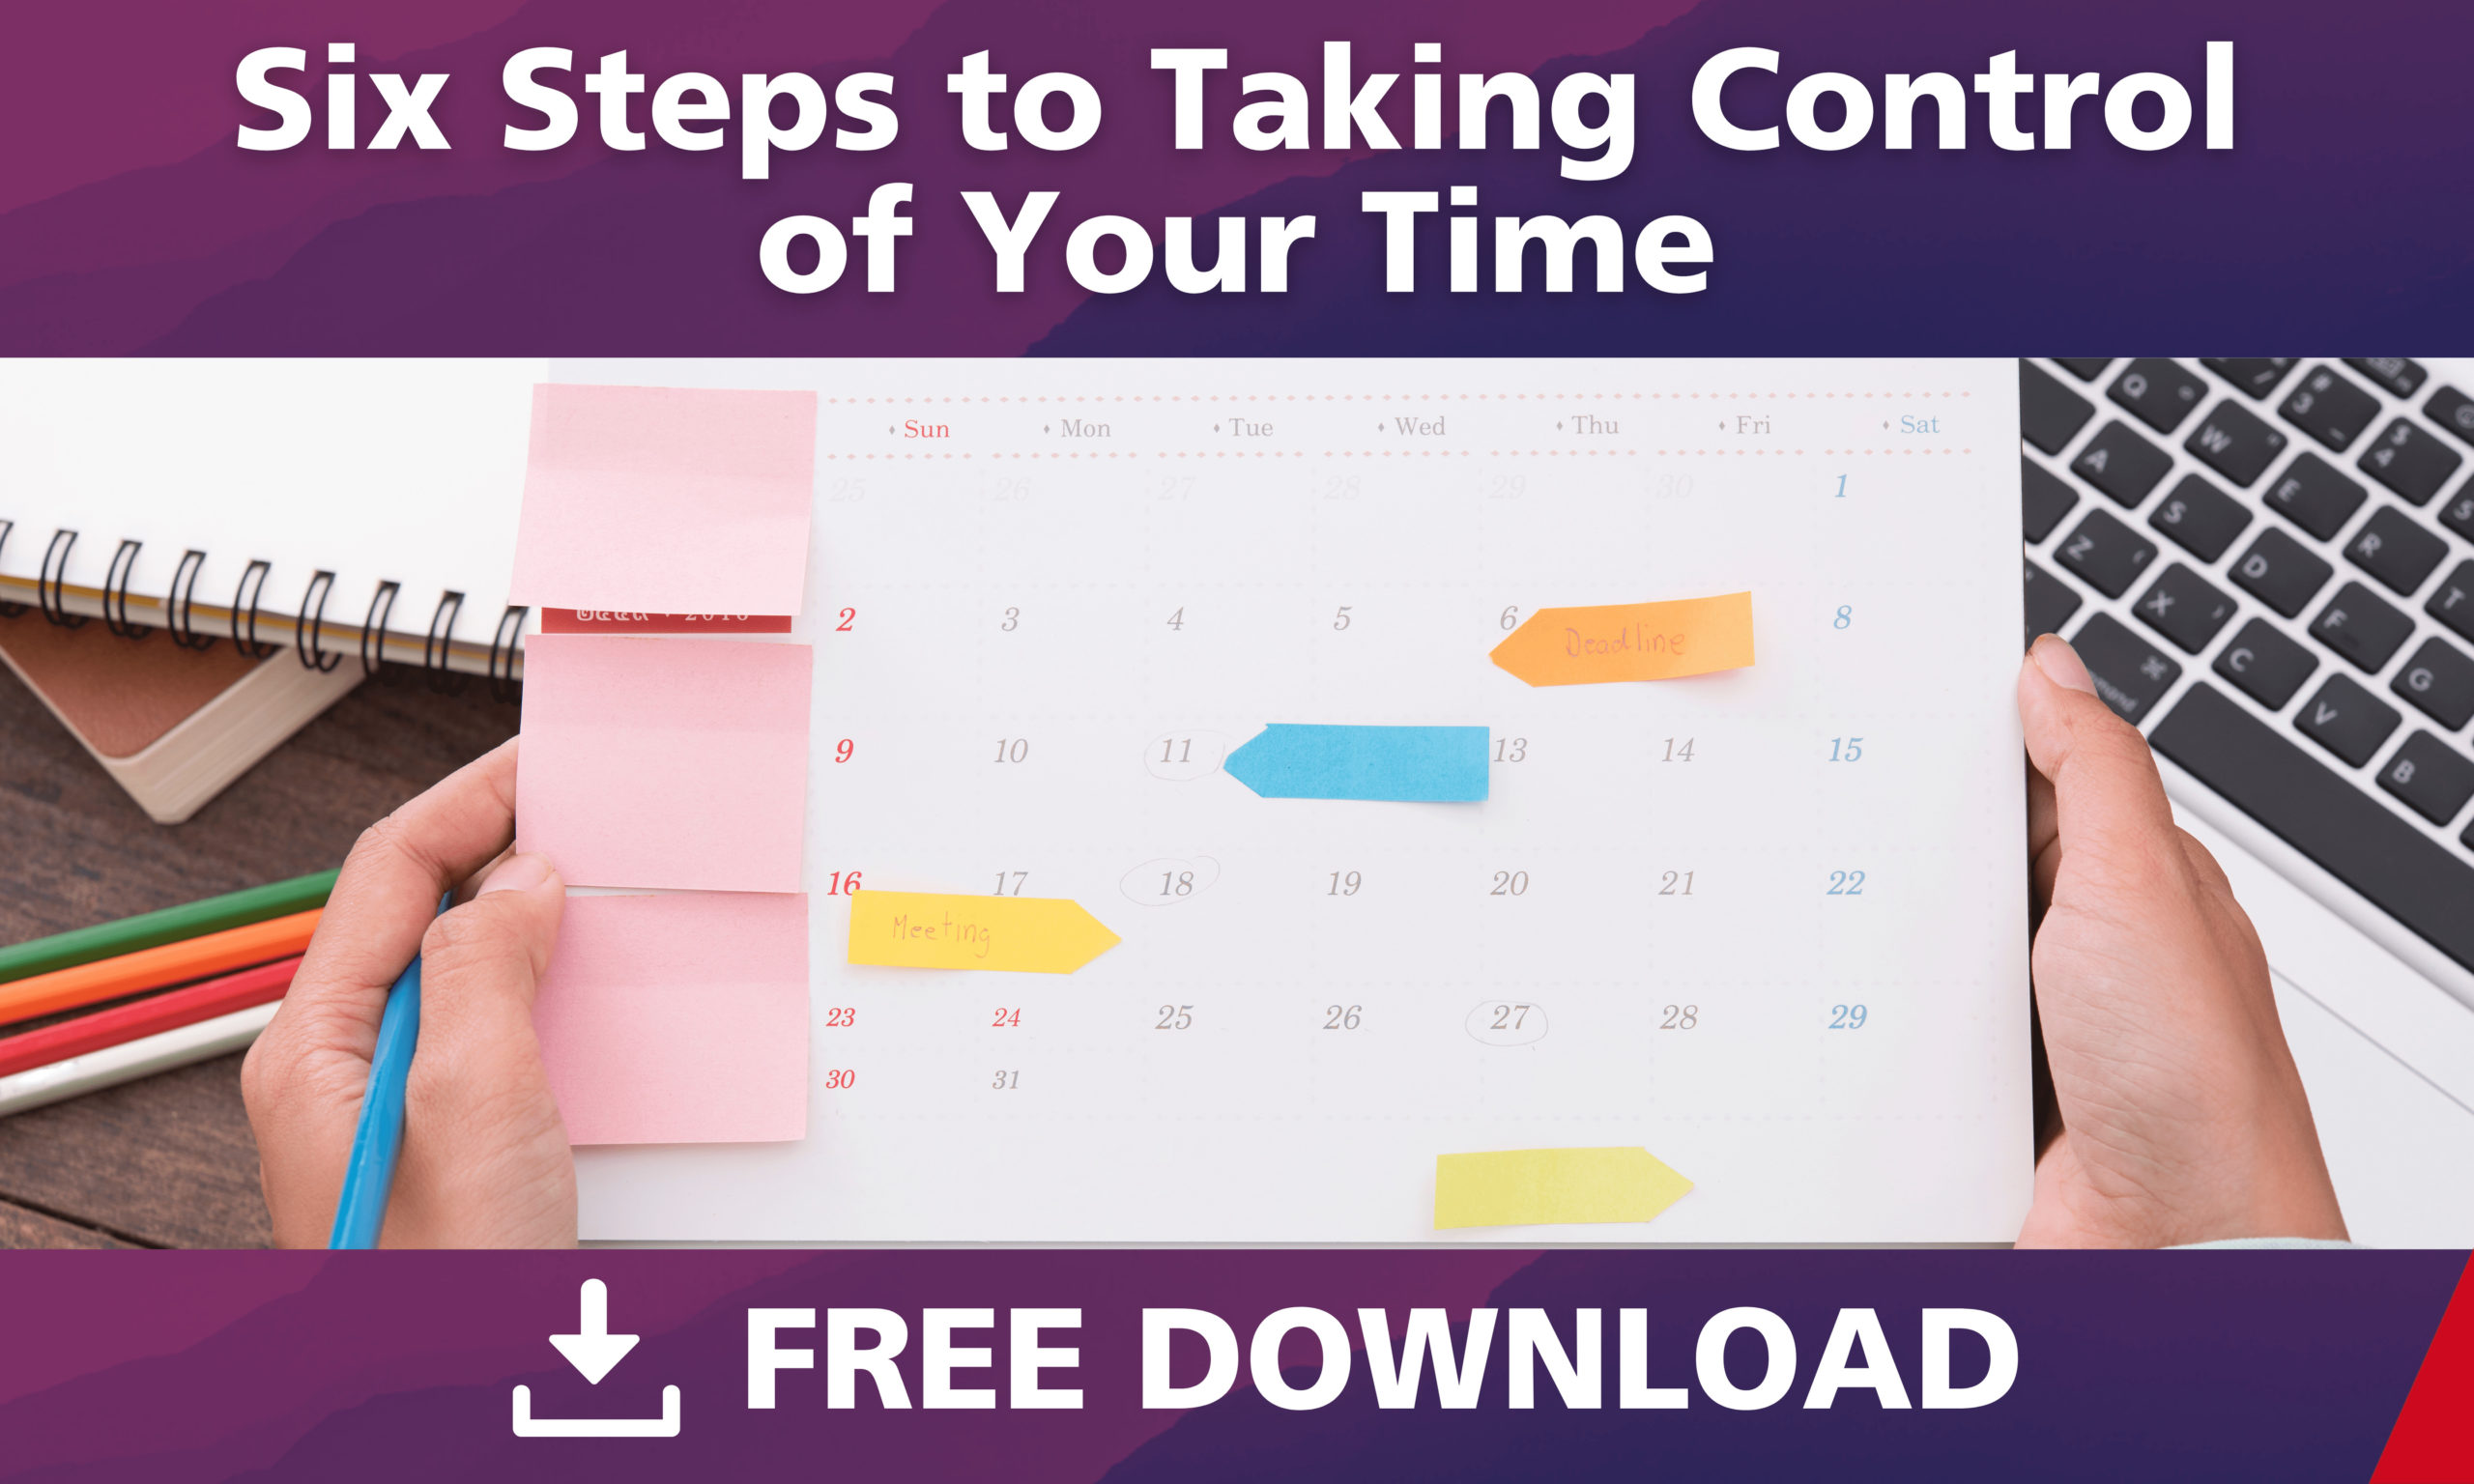 Six Steps to Taking Control of Your Time